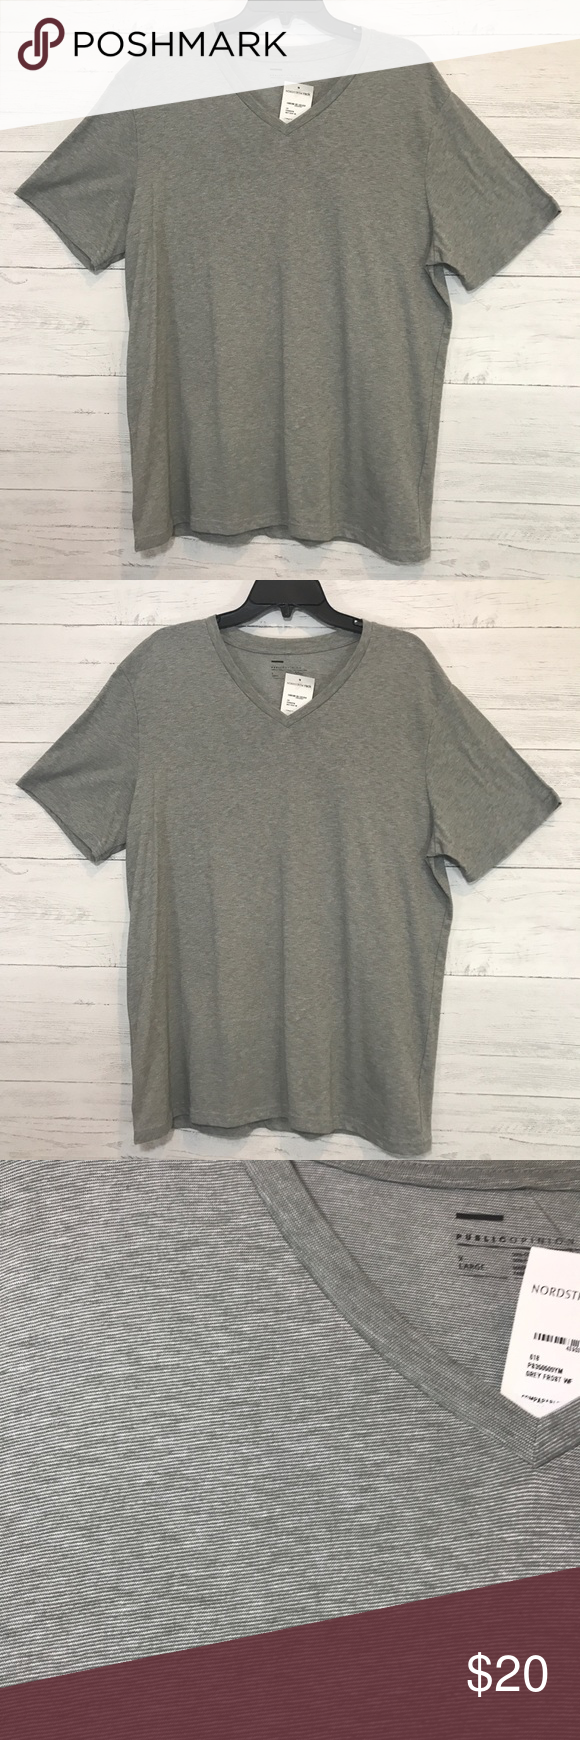 8fb337342 Public Opinion Men's V-Neck T-Shirt Grey NWT Color Grey Frost Size X-Large Short  sleeves V-neck public opinion Shirts Tees - Short Sleeve